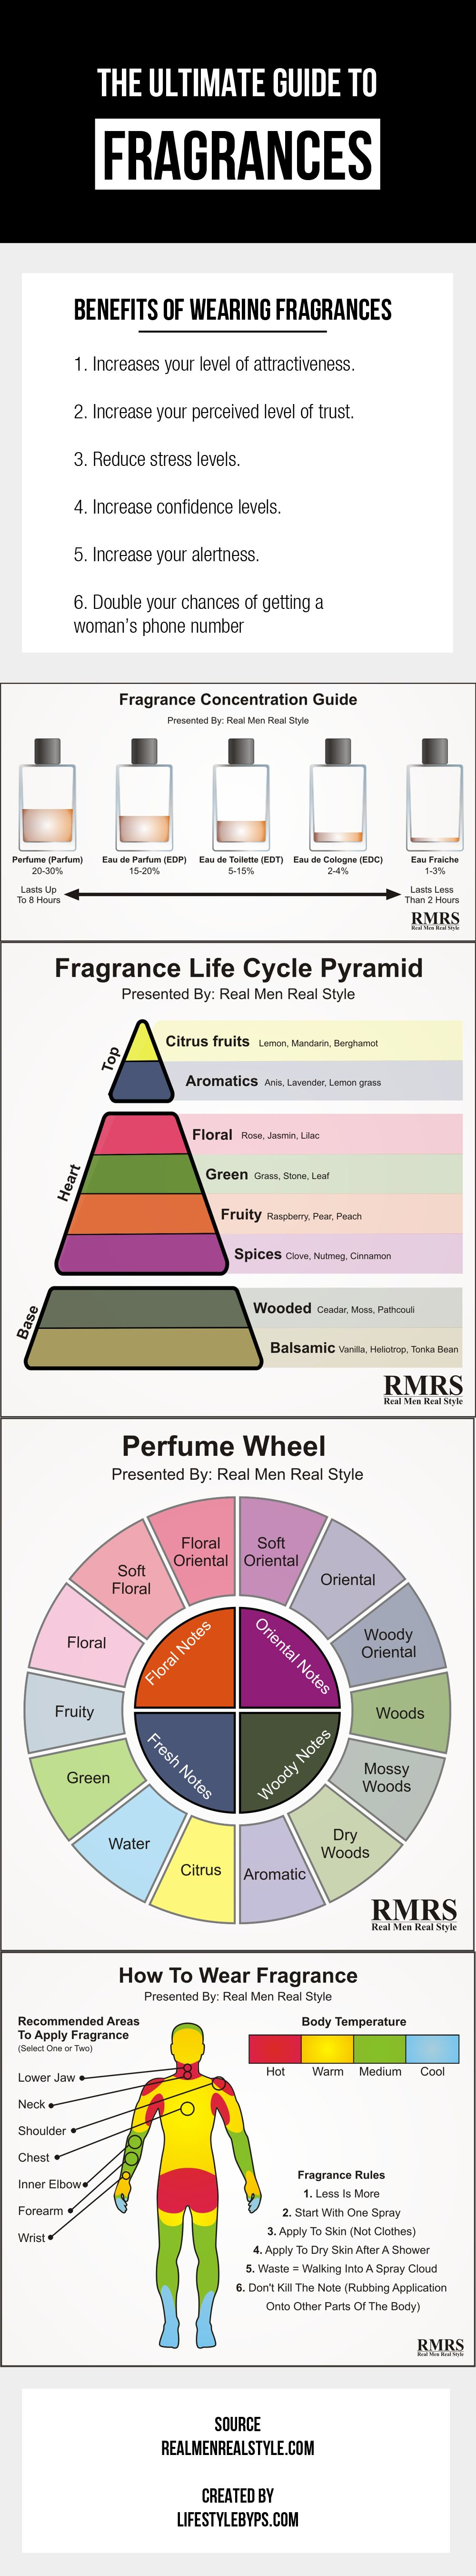 The ultimate guide to fragrances infographic infographics guy and